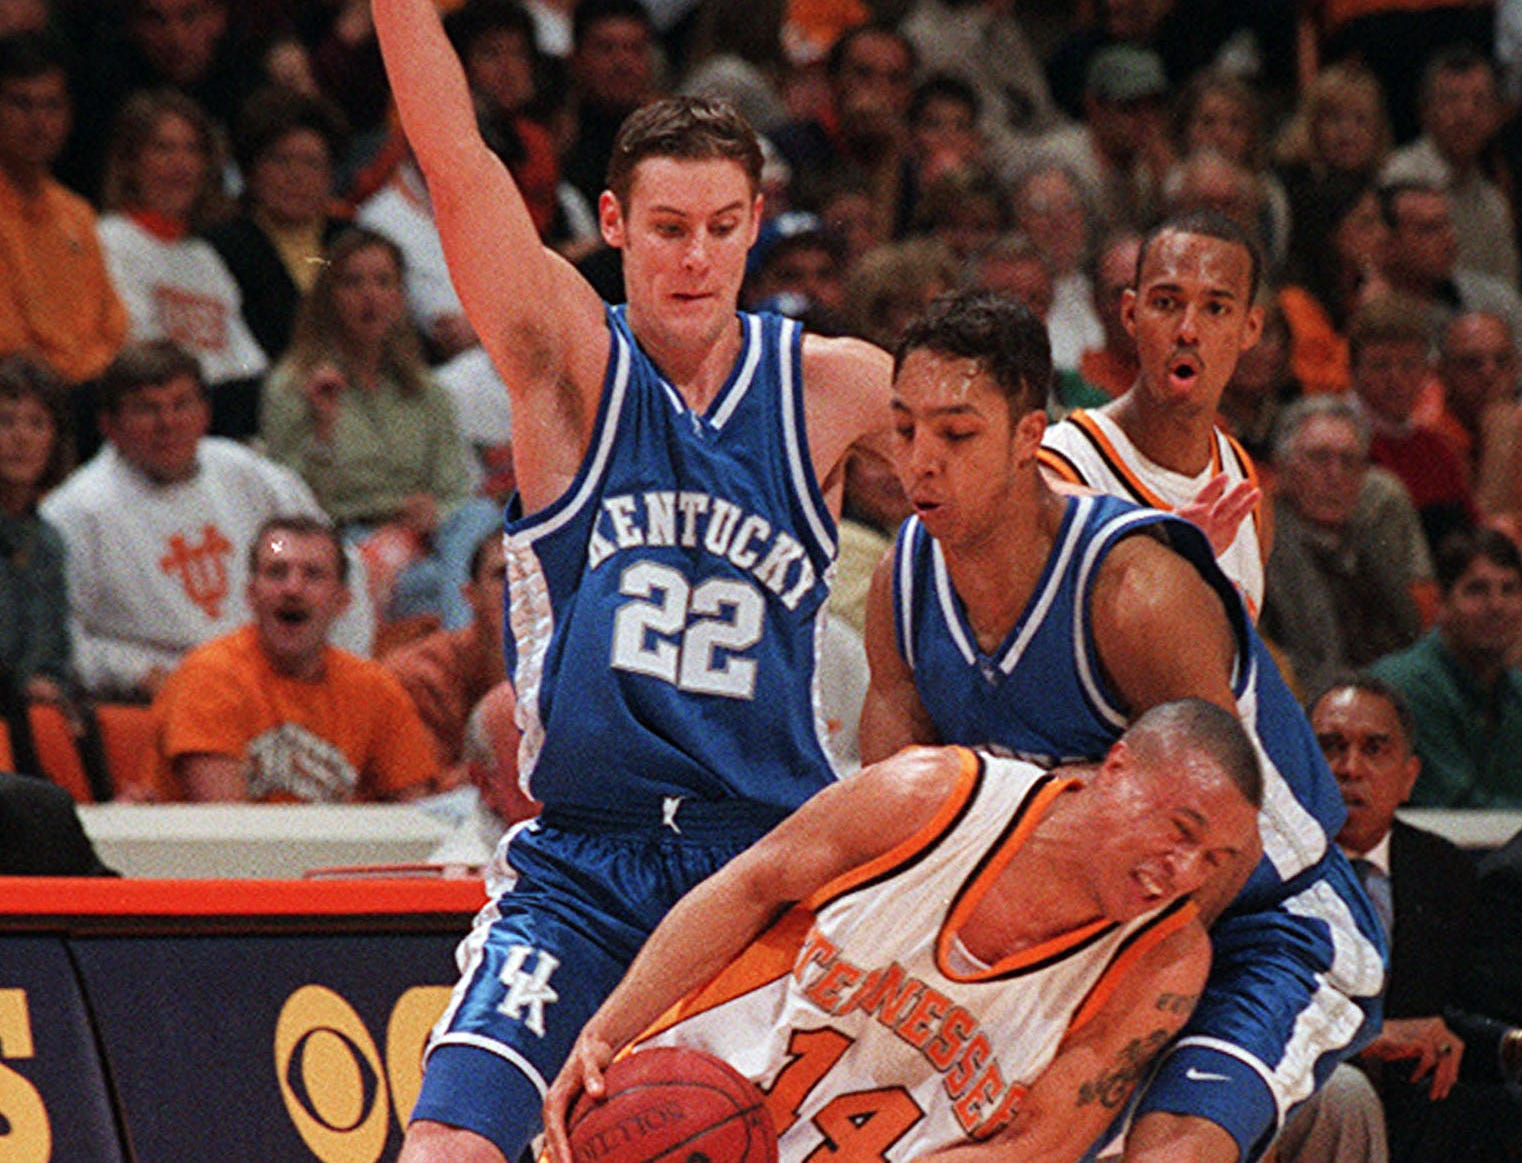 Tennessee's Tony Harris tries to get past Kentucky defenders Ryan Hogan (22) and Saul Smith during a NCAA basketball game Sunday, Feb. 28, 1999, at Thompson-Boling Arena. The Vols beat the No. 13 Wildcats 68-61. Harris's teammate Brandon Wharton looks on.